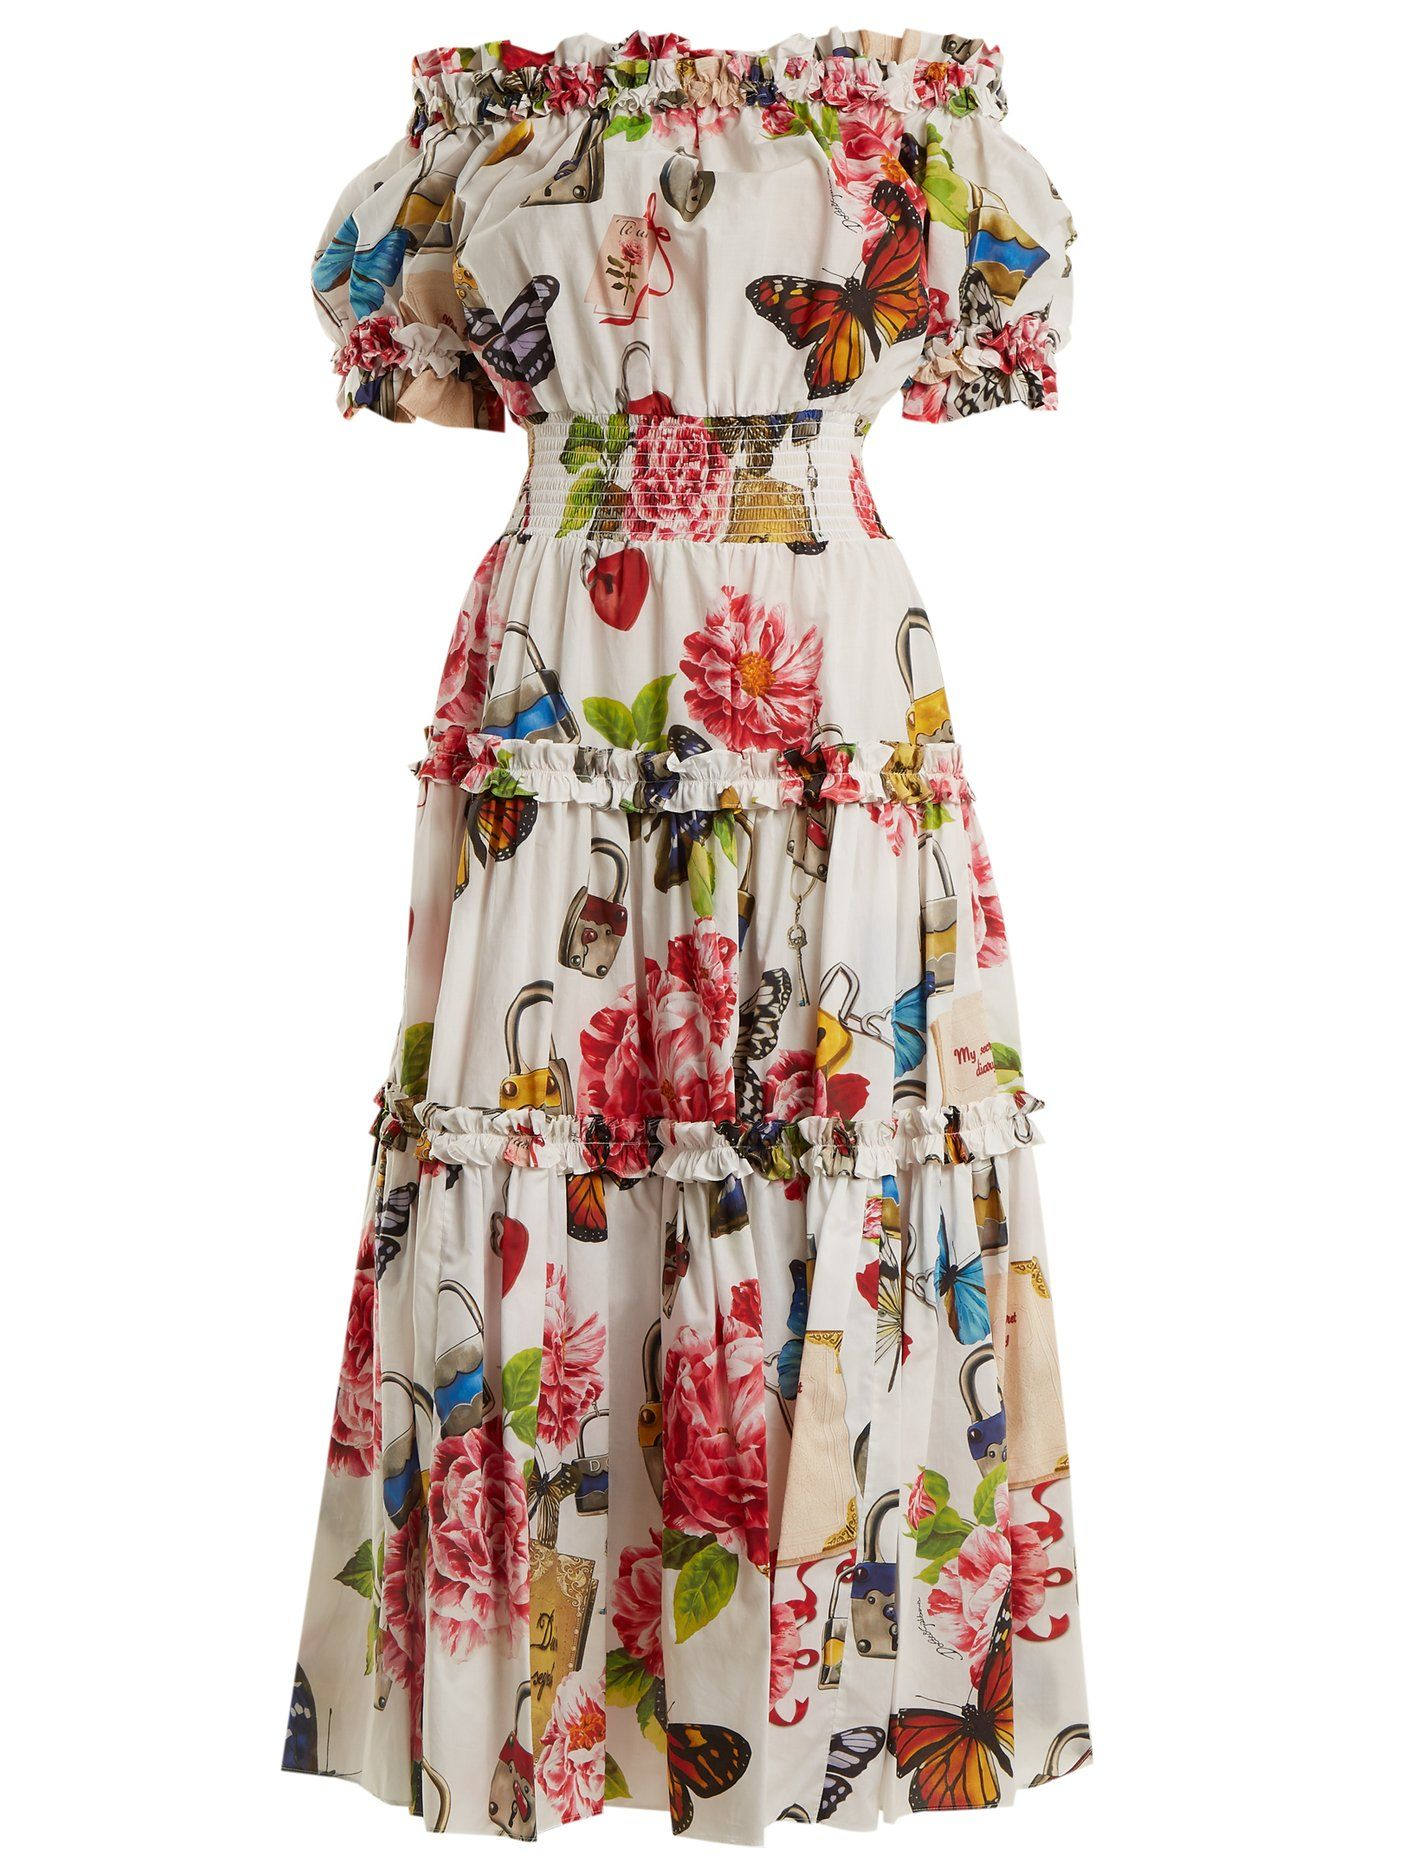 eb1a633ef83 Padlock and garden-print off-shoulder dress | Dolce & Gabbana |  MATCHESFASHION.COM US